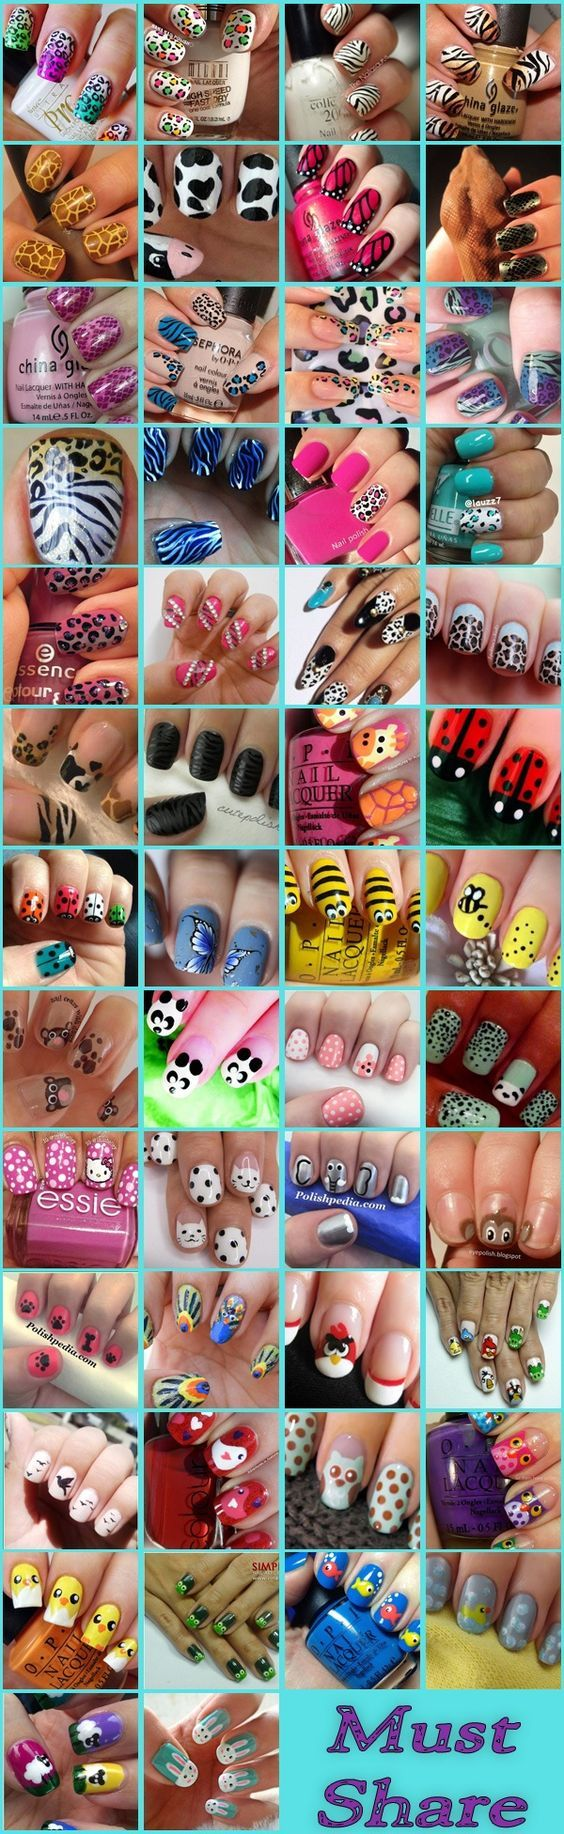 Nail Art Designs For Beginners:Go easy on yourself and start with these easy nail art designs for beginners. So all set to get started?: